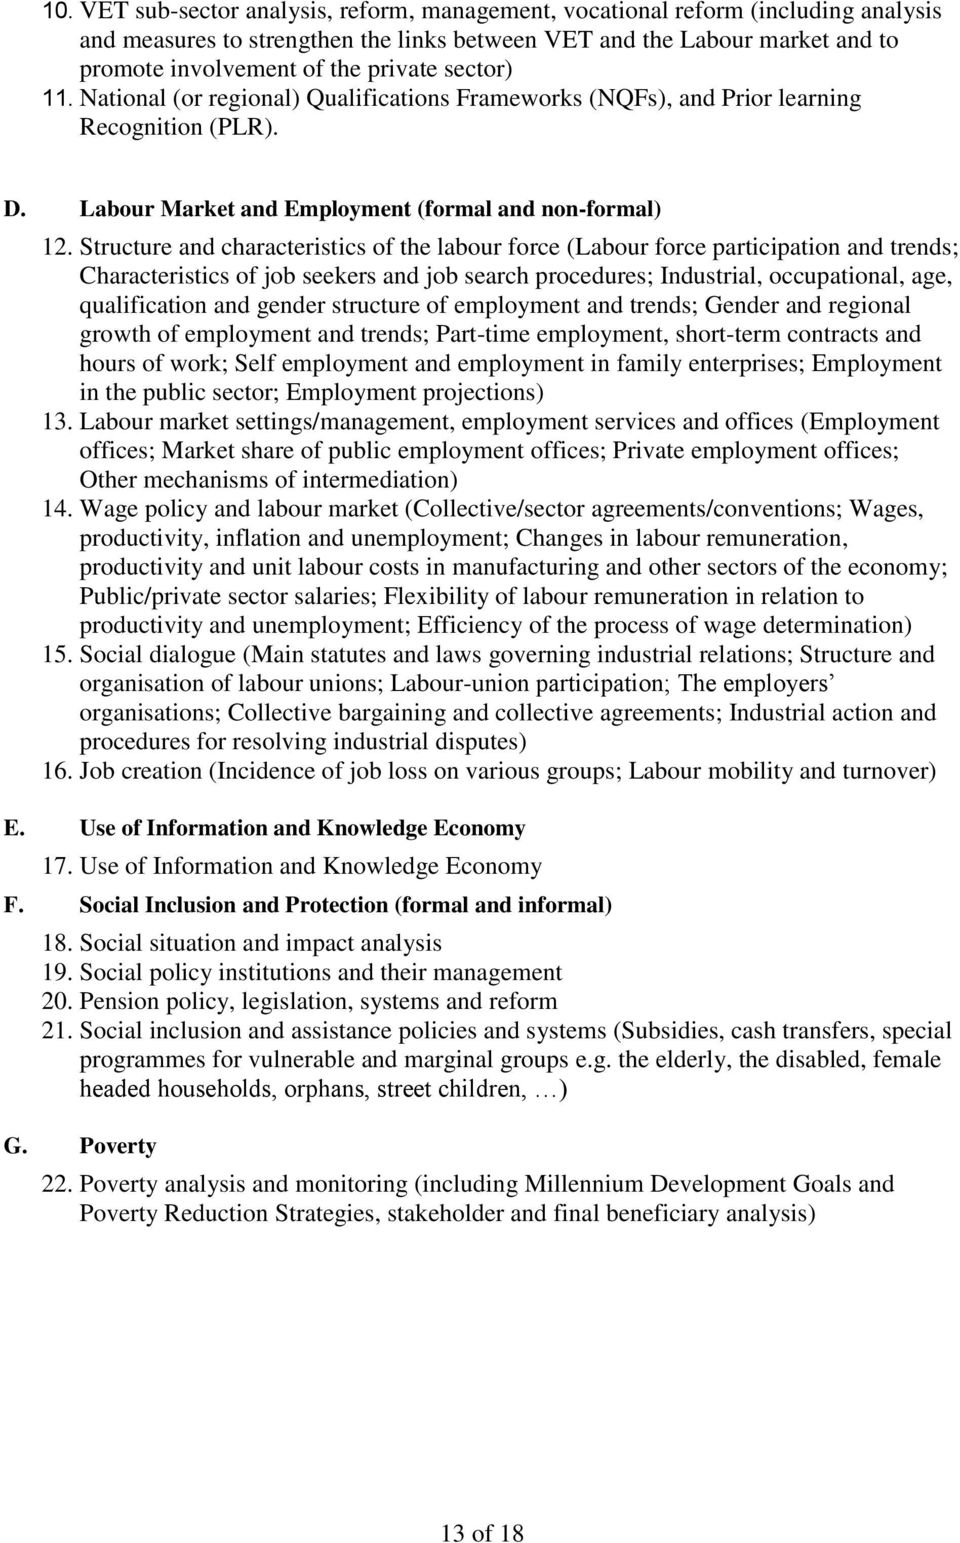 Structure and characteristics of the labour force (Labour force participation and trends; Characteristics of job seekers and job search procedures; Industrial, occupational, age, qualification and